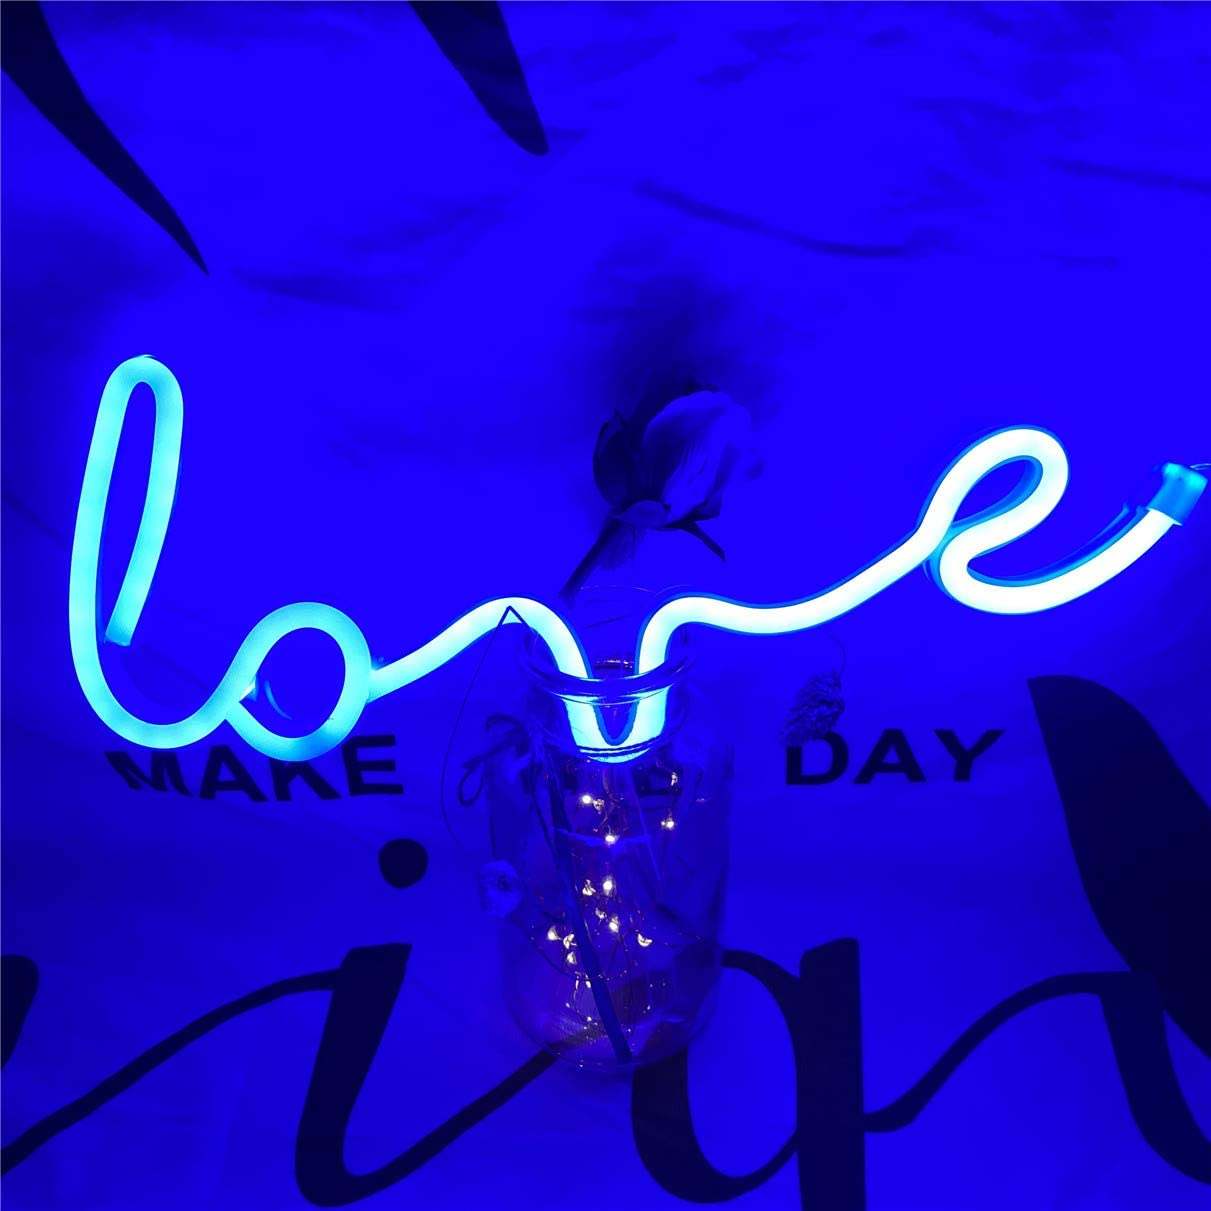 Neon Art Love Signs Light LED Love Kids Gift-Decorative Marquee Sign for Wall Room Wedding Party Bar Pub Hotel Beach Recreational (Blue)